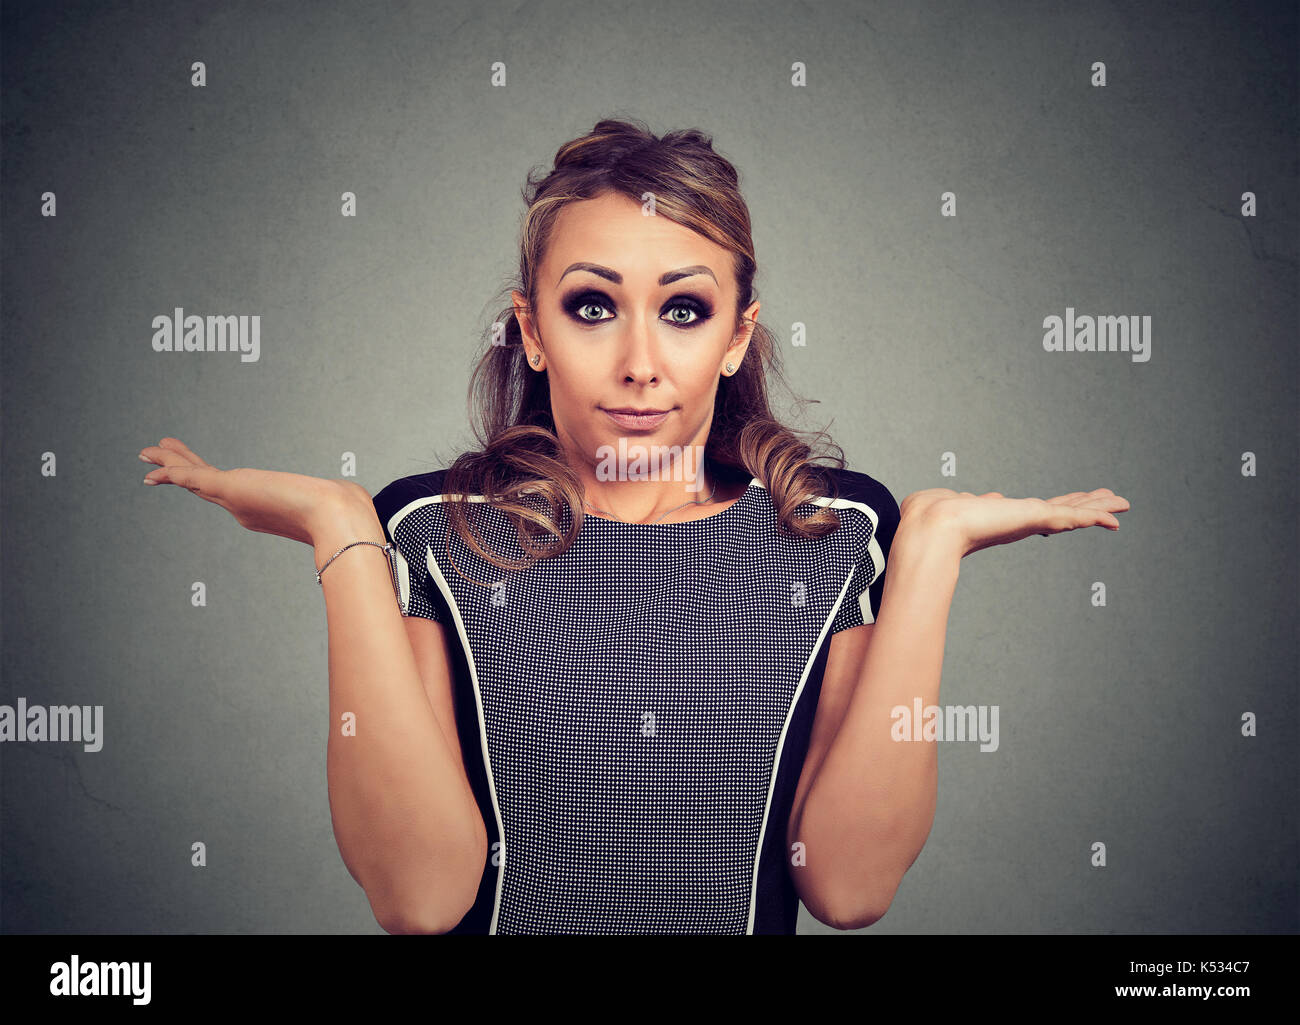 Woman has no answer shrugging shoulders looking at camera - Stock Image